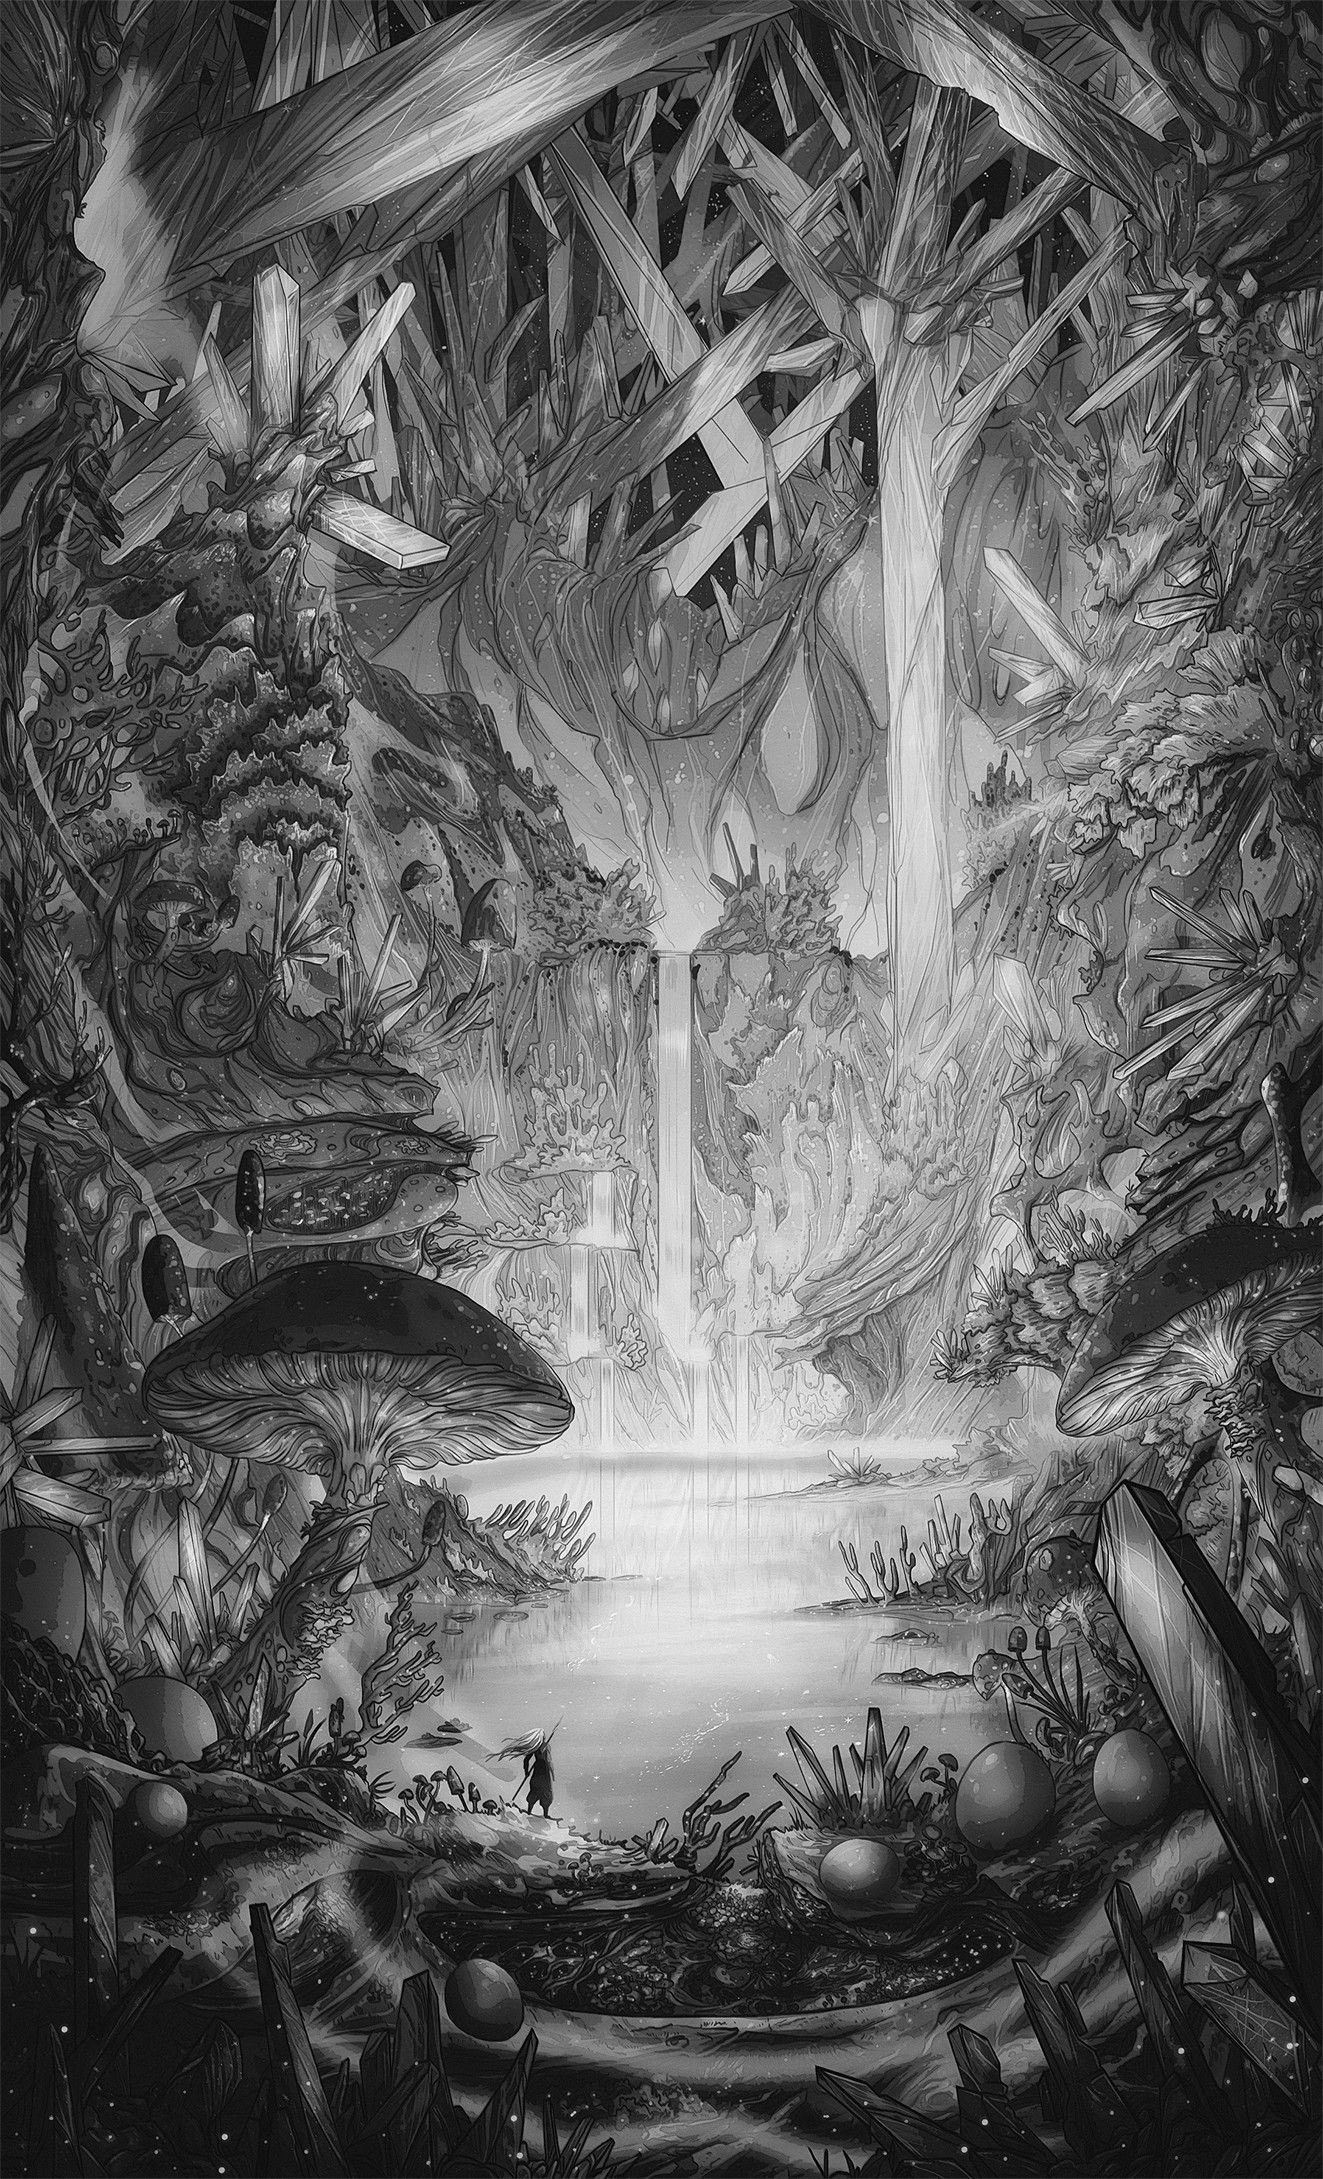 Christian benavides the cavern illustration sungmanitu final art greysacale